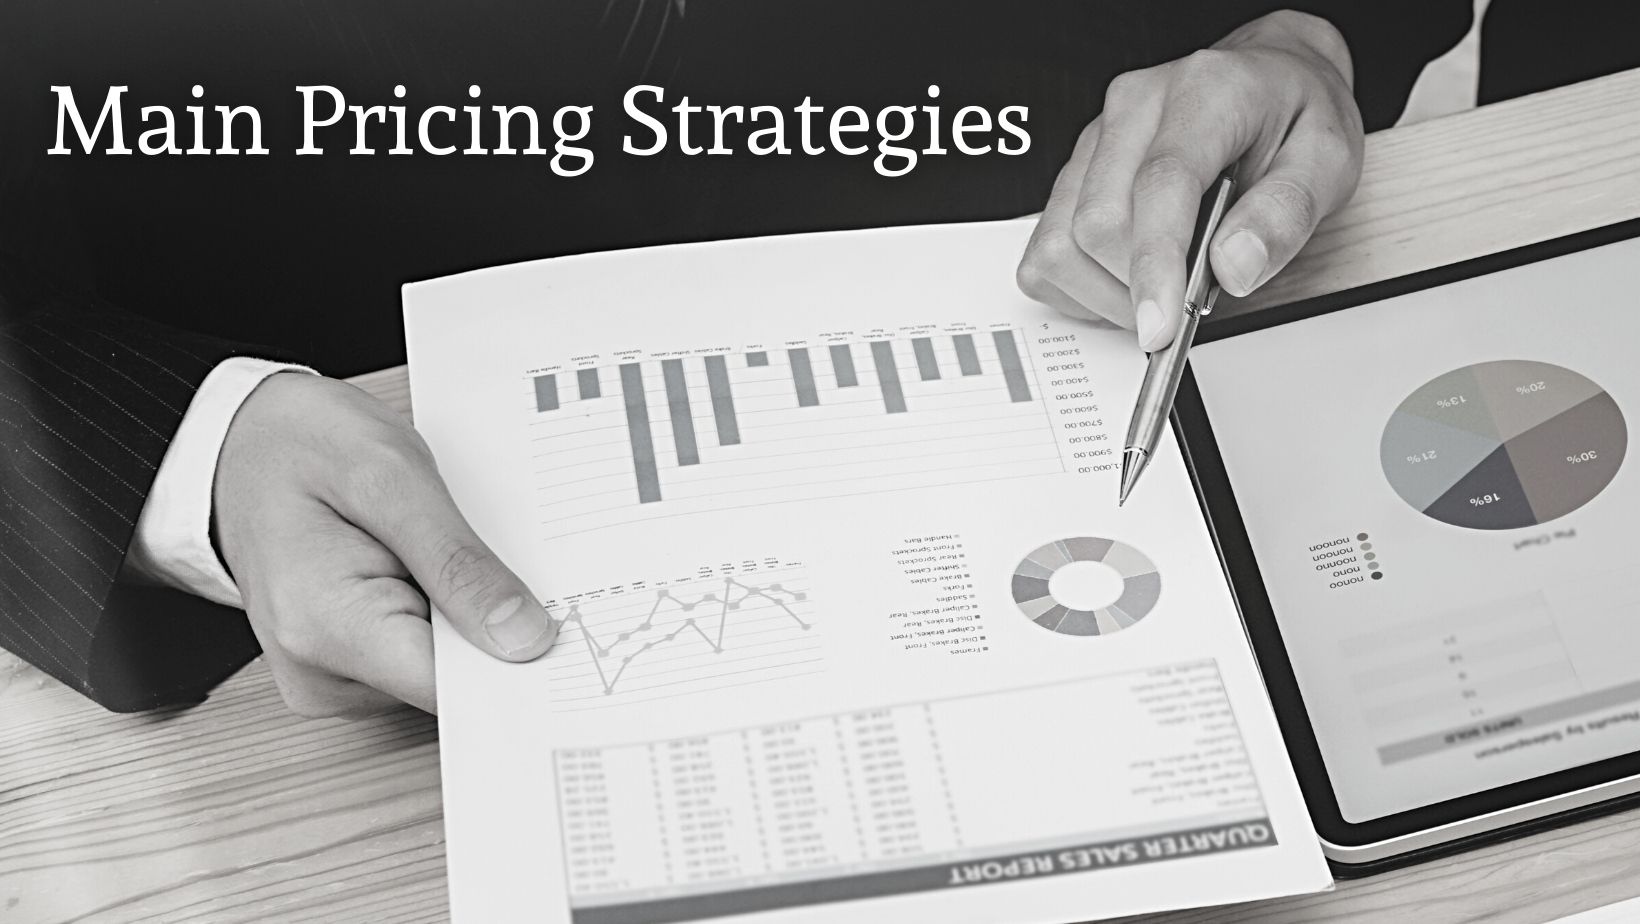 Main Pricing Strategies cover